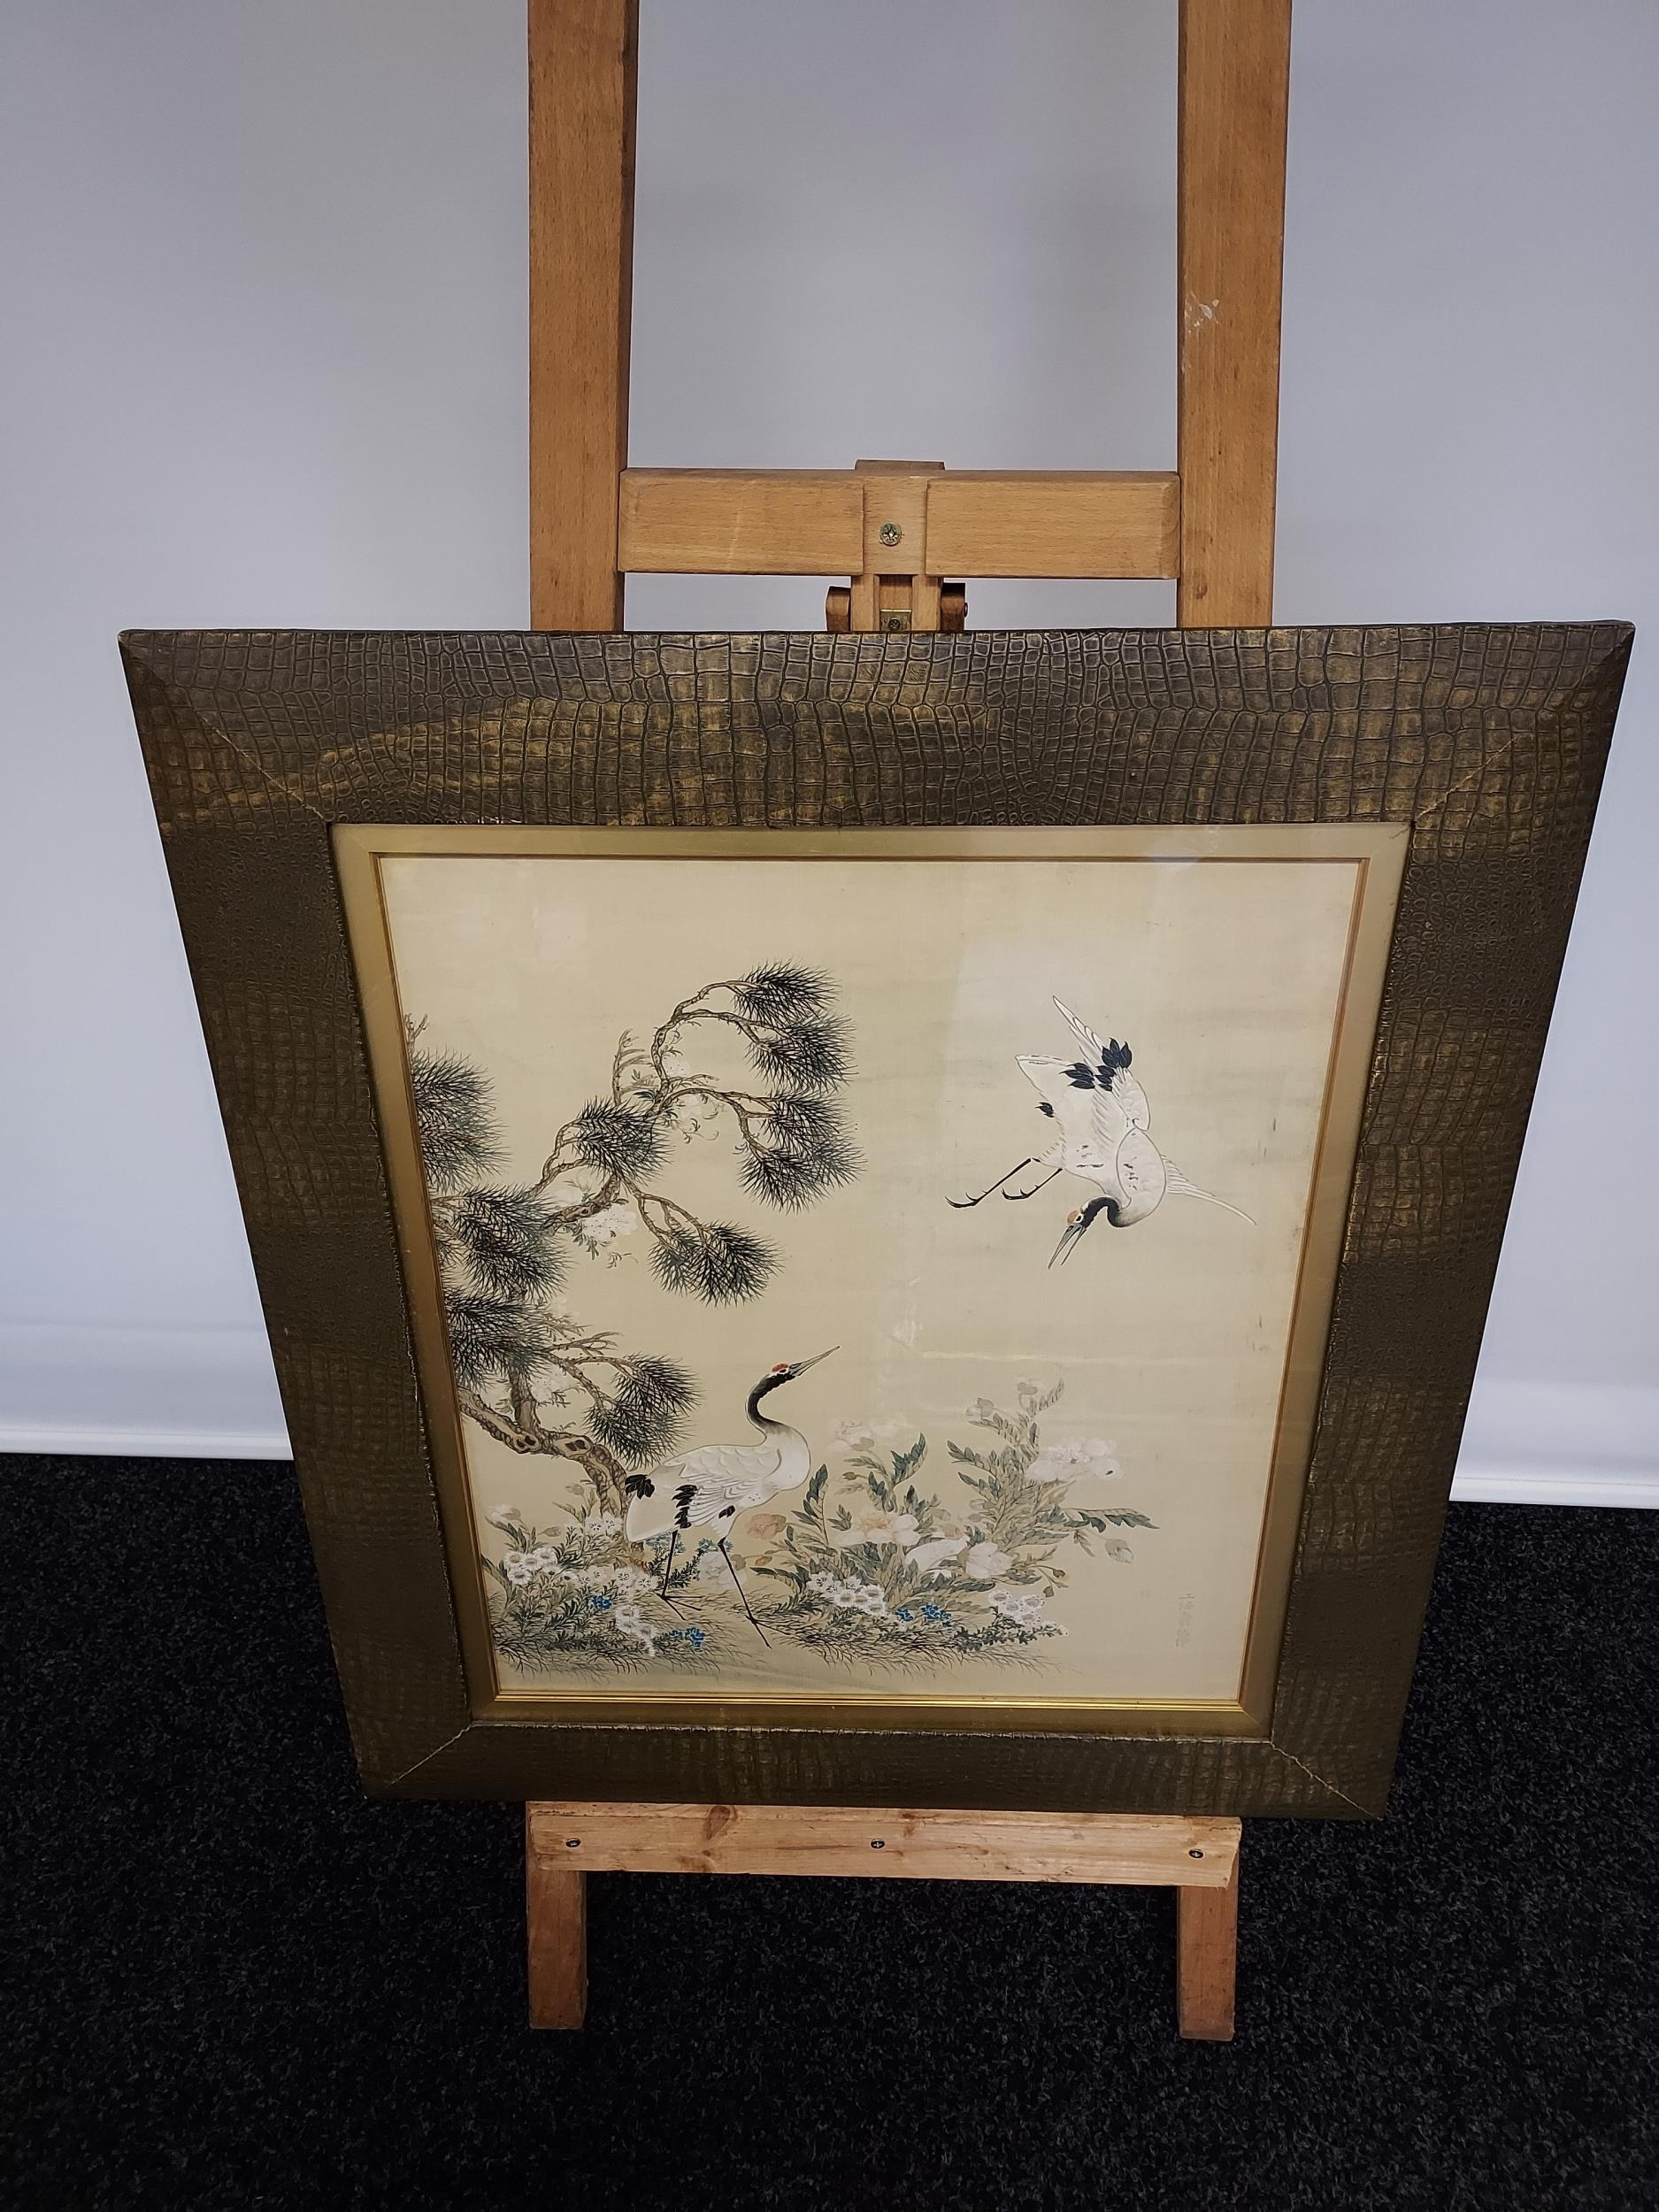 A Large 18th/ 19th century Chinese/ Japanese silk painting depicting cranes surrounded by tree and